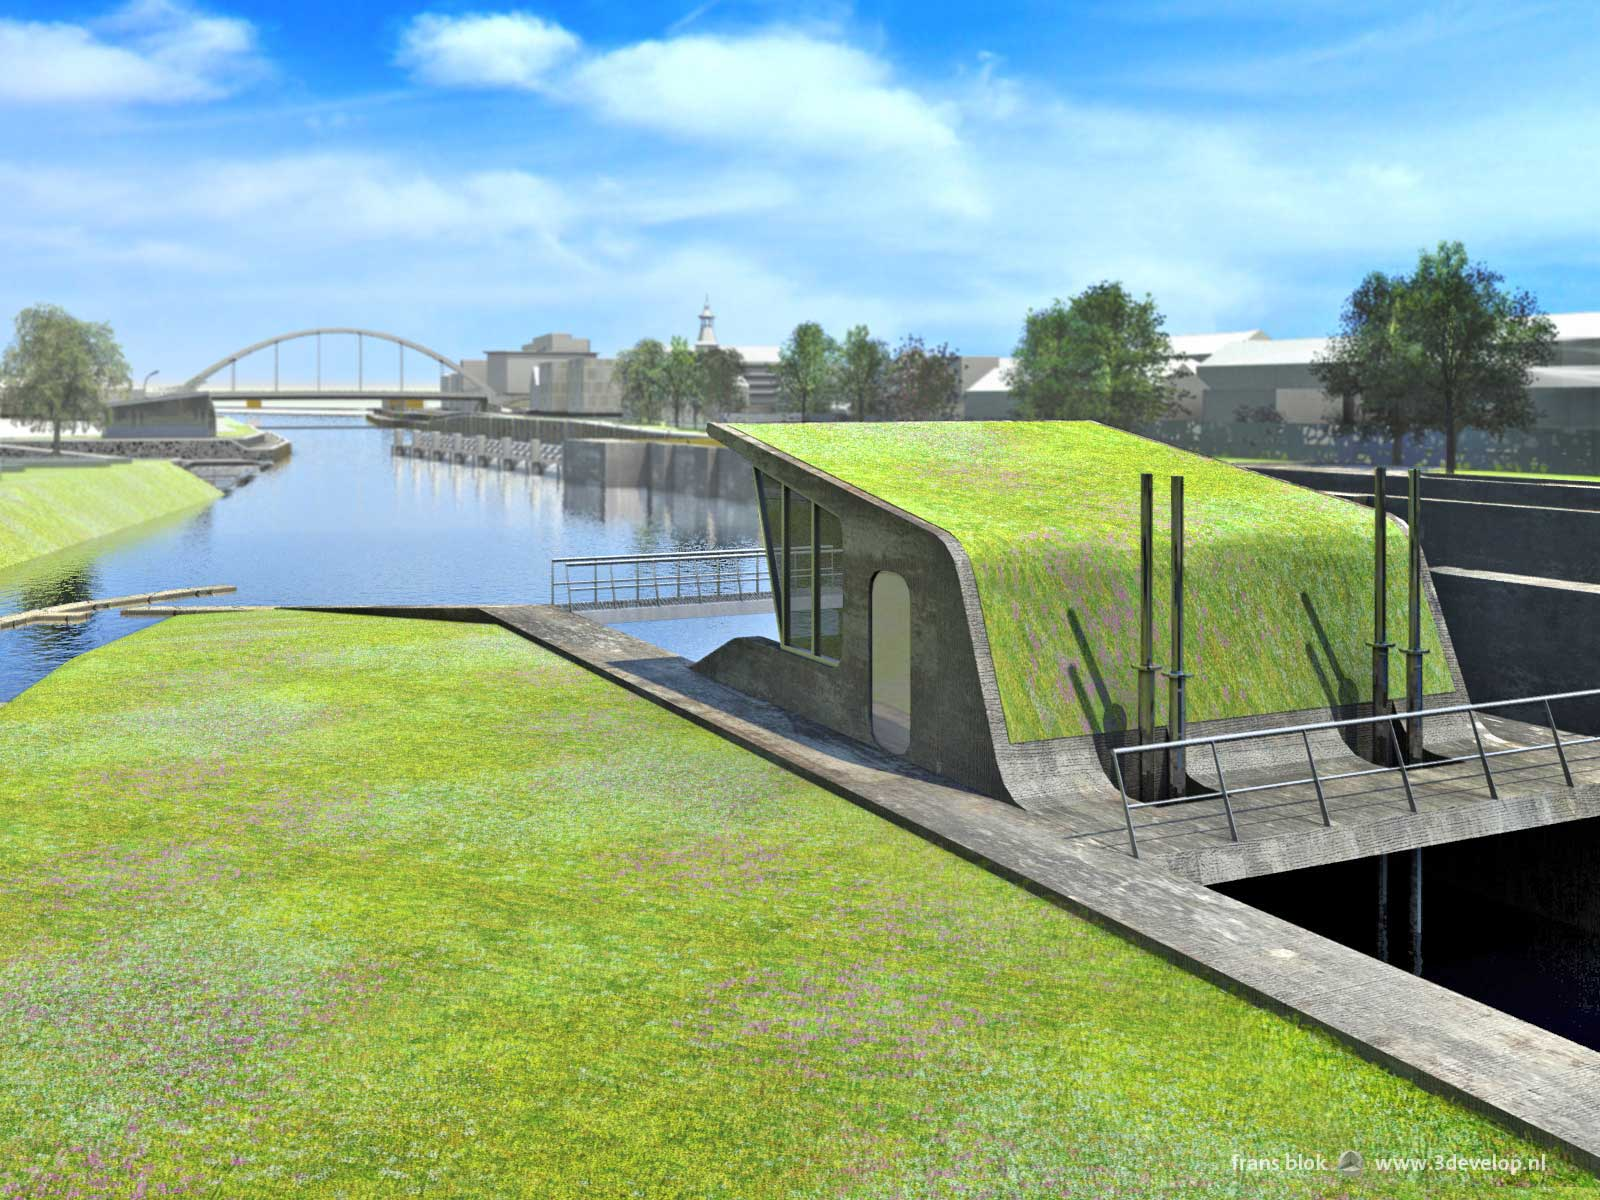 Locks and embankment park, Harelbeke - design: Royal HaskoningDHV